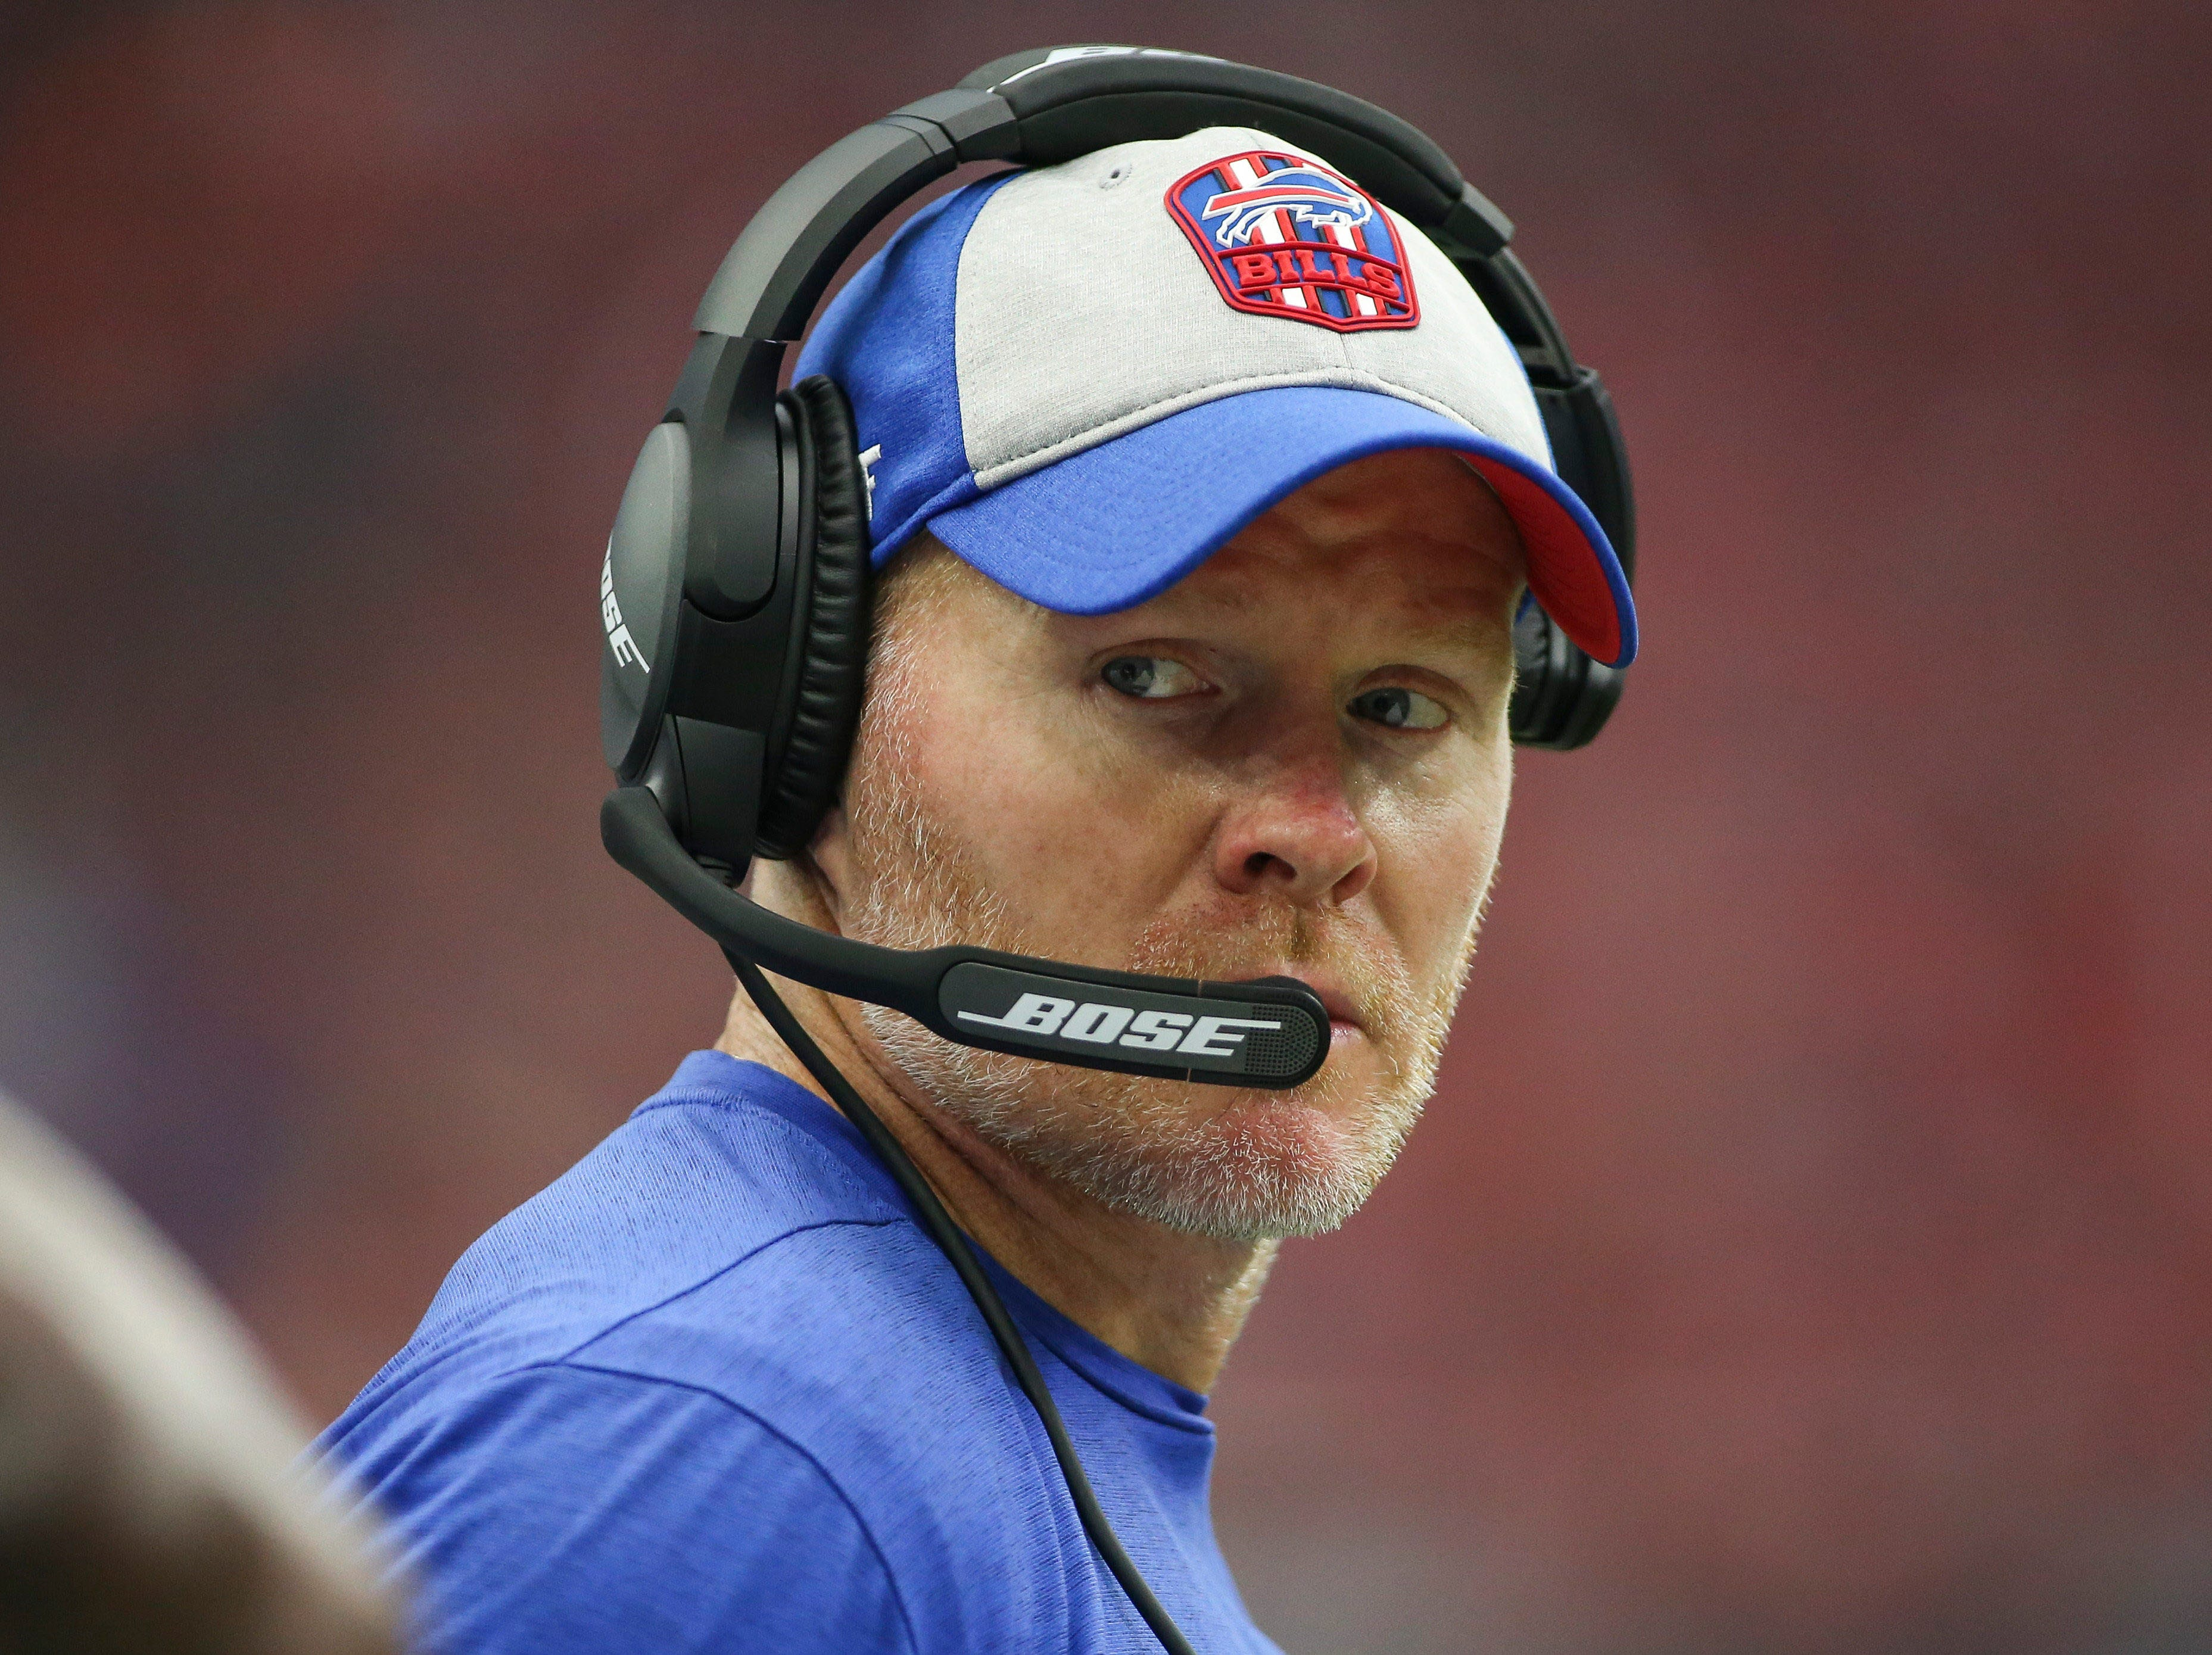 Oct 14, 2018; Houston, TX, USA; Buffalo Bills head coach Sean McDermott looks on from the sideline during the second quarter against the Houston Texans at NRG Stadium. Mandatory Credit: Troy Taormina-USA TODAY Sports